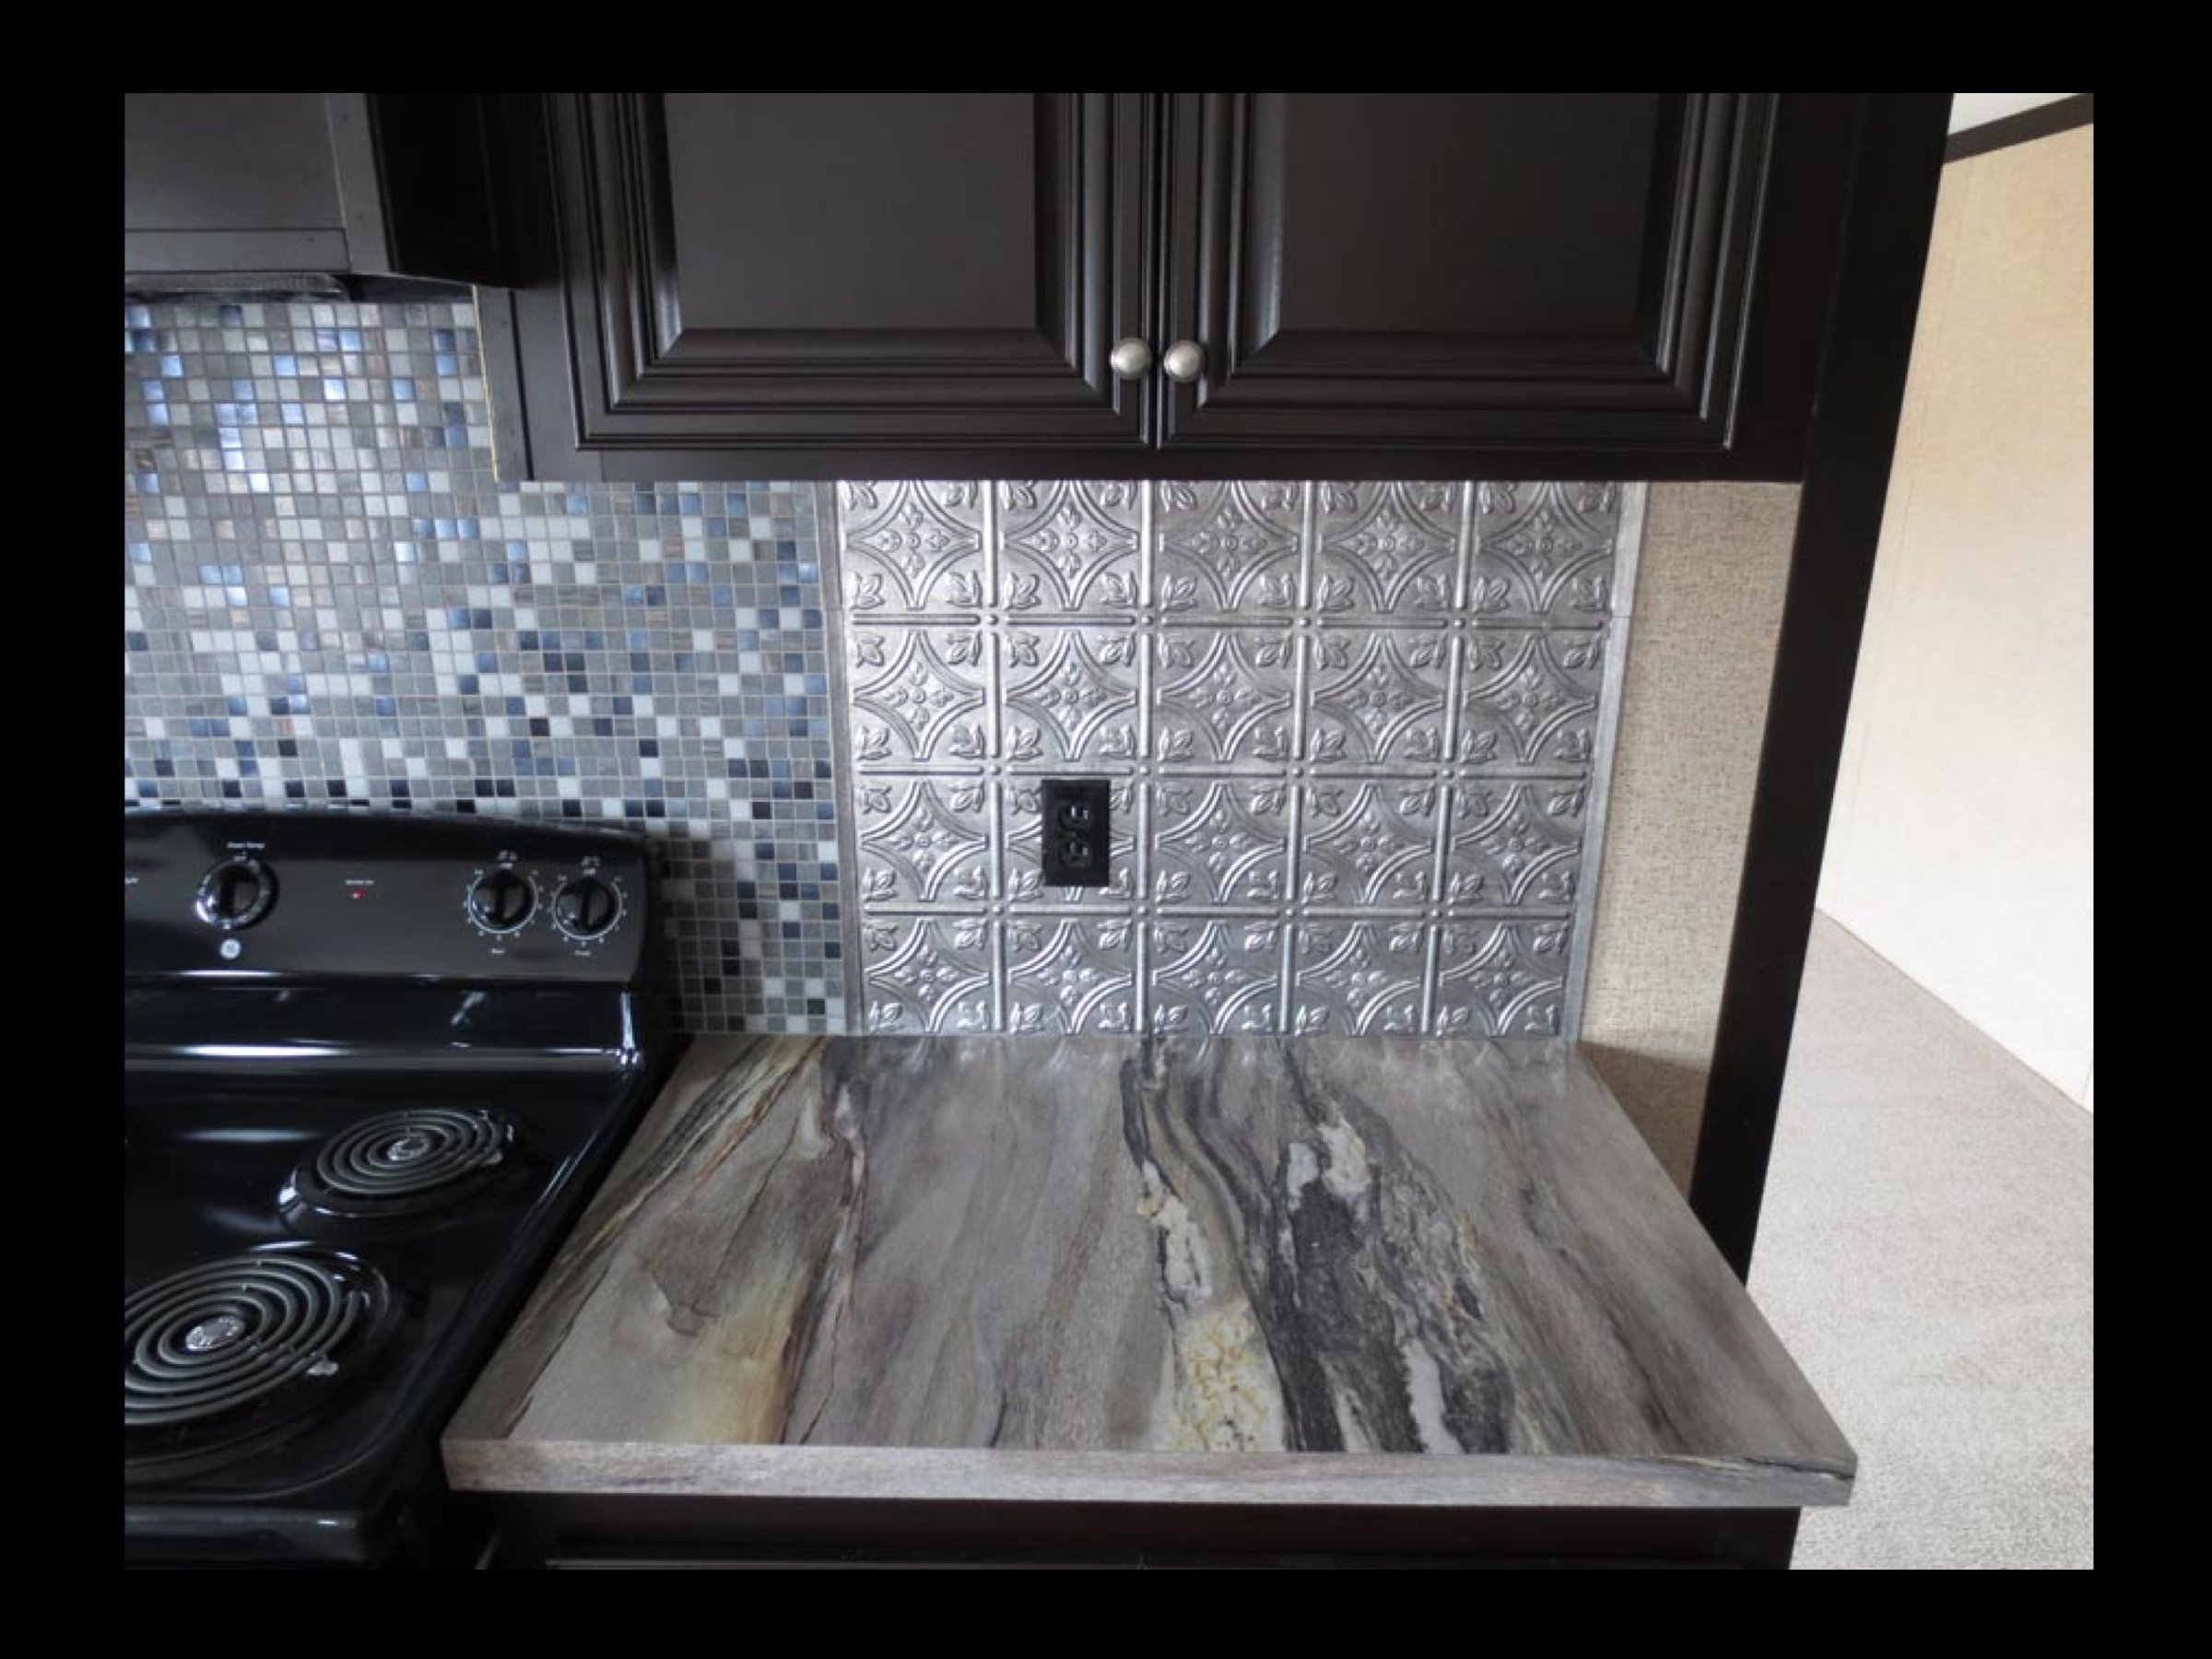 Kitchen Backsplash Ideas For Black Cabinets And Blue Storm Formica Countertops